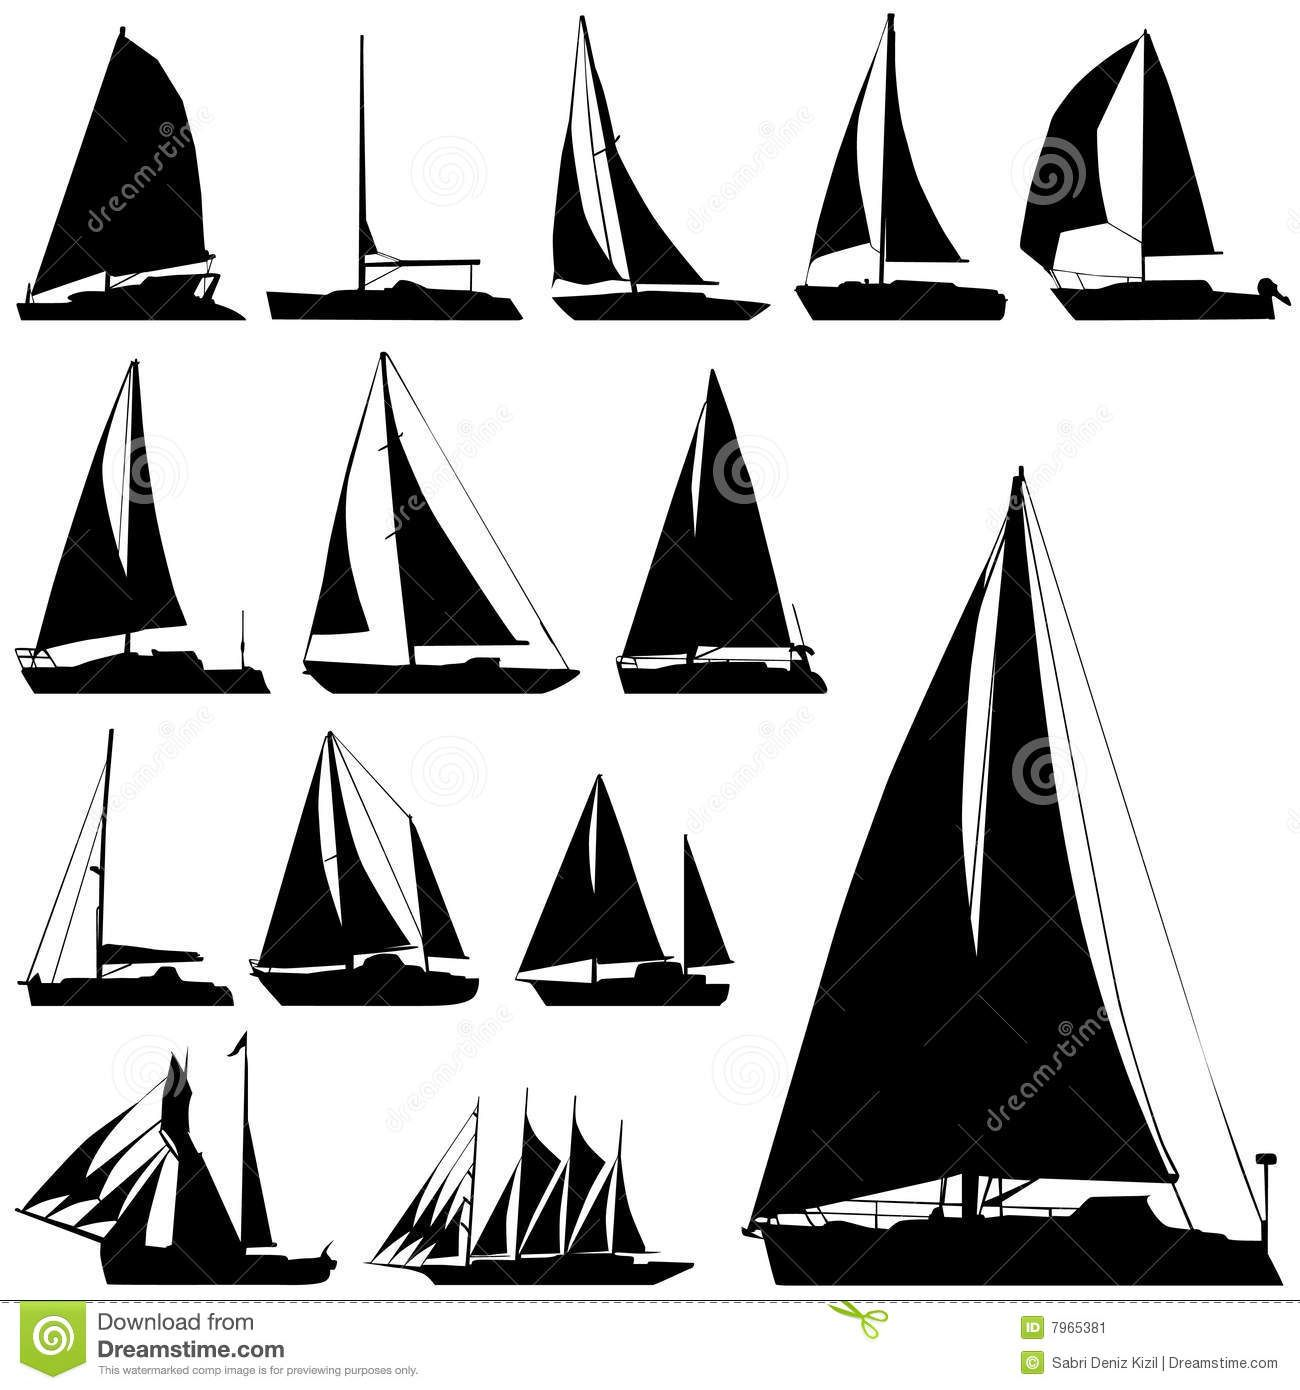 Sailing Boat Vector - Download From Over 49 Million High